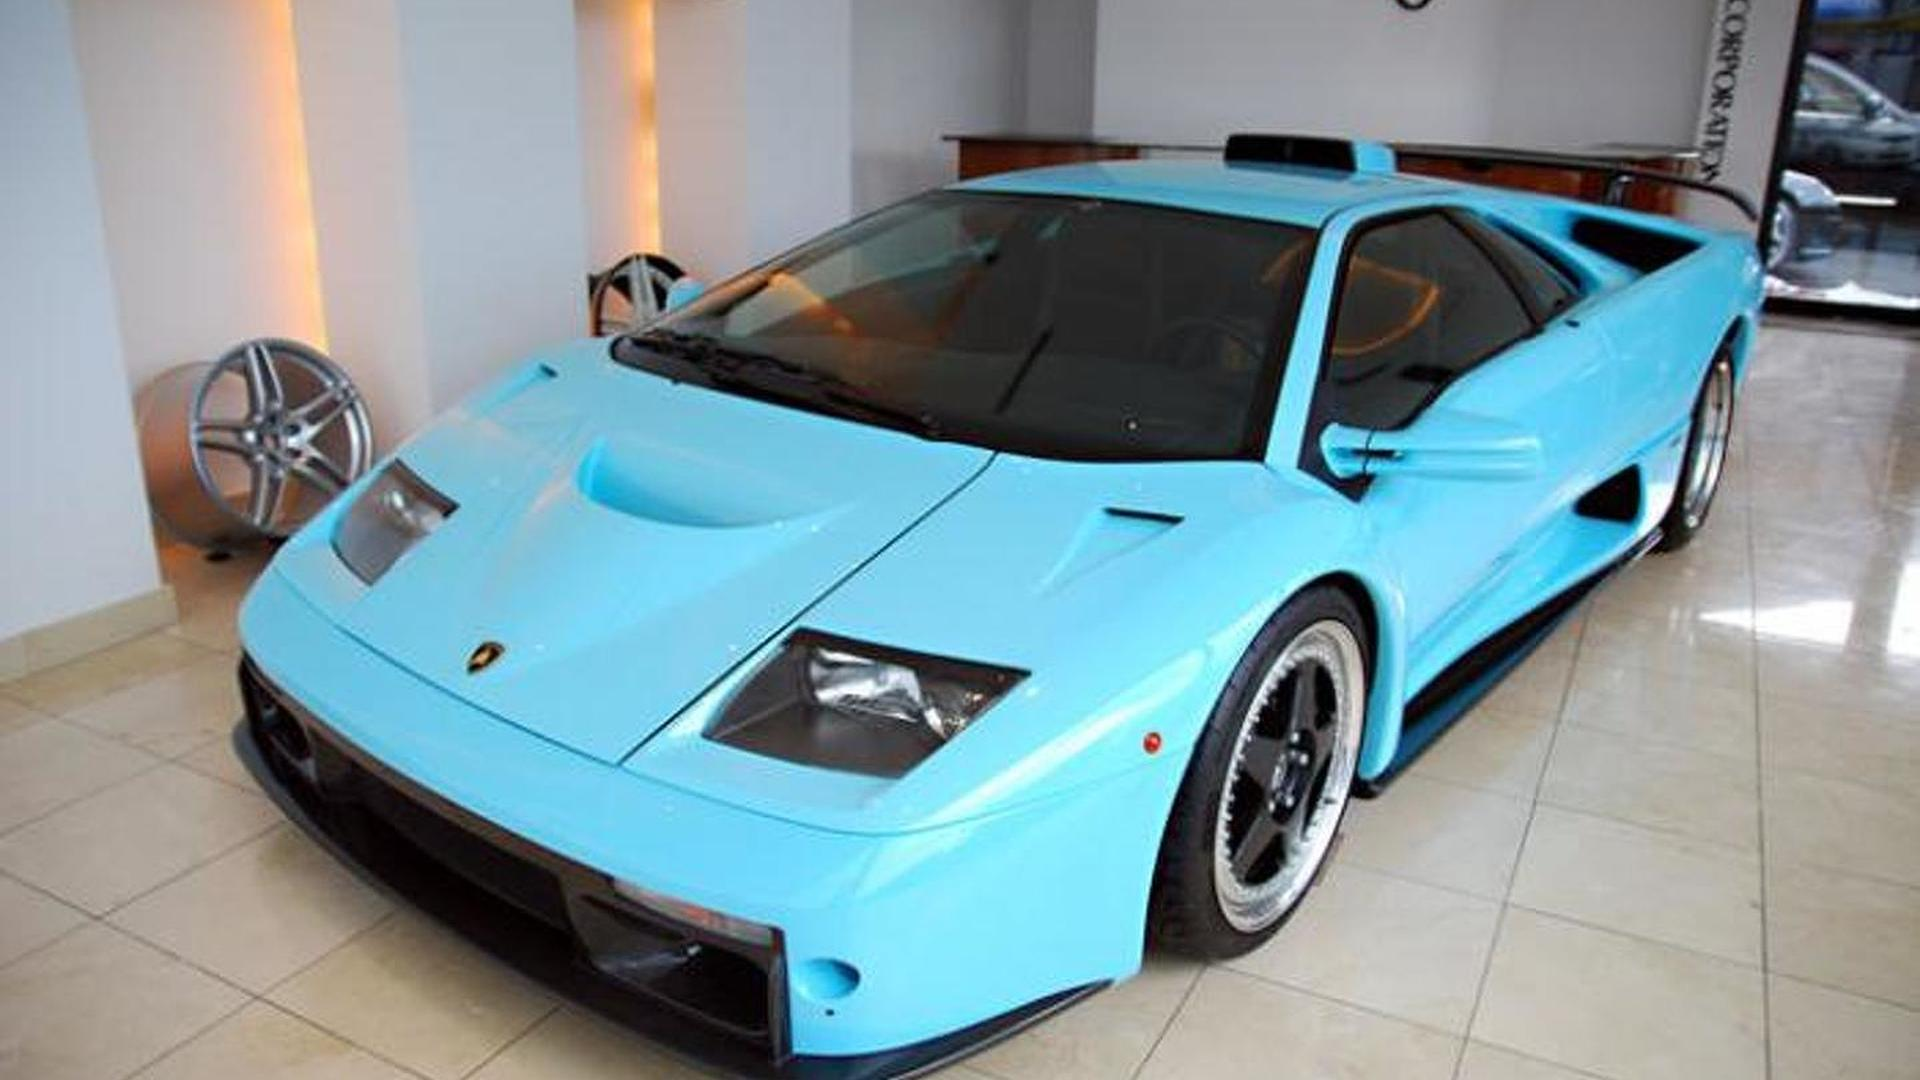 Ice blue 2001 Lamborghini Diablo GT up for sale in Japan